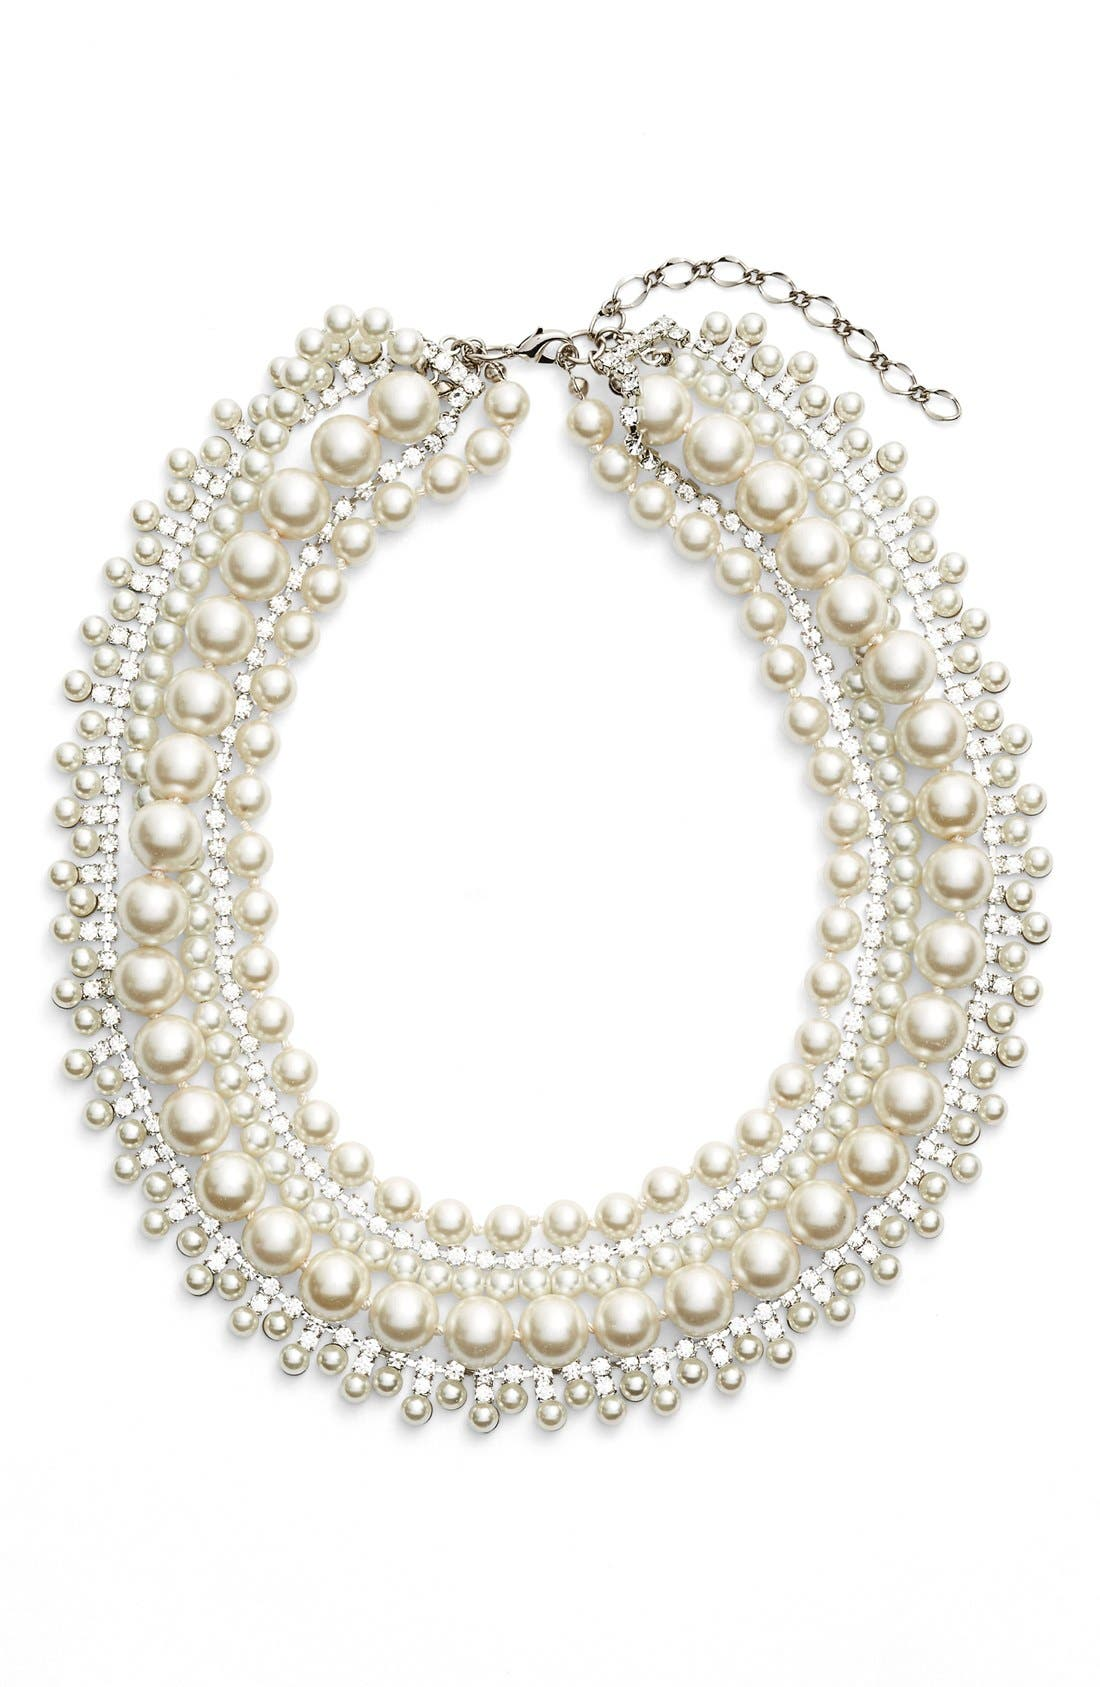 Main Image - Cristabelle Crystal & Imitation Pearl Multristrand Necklace